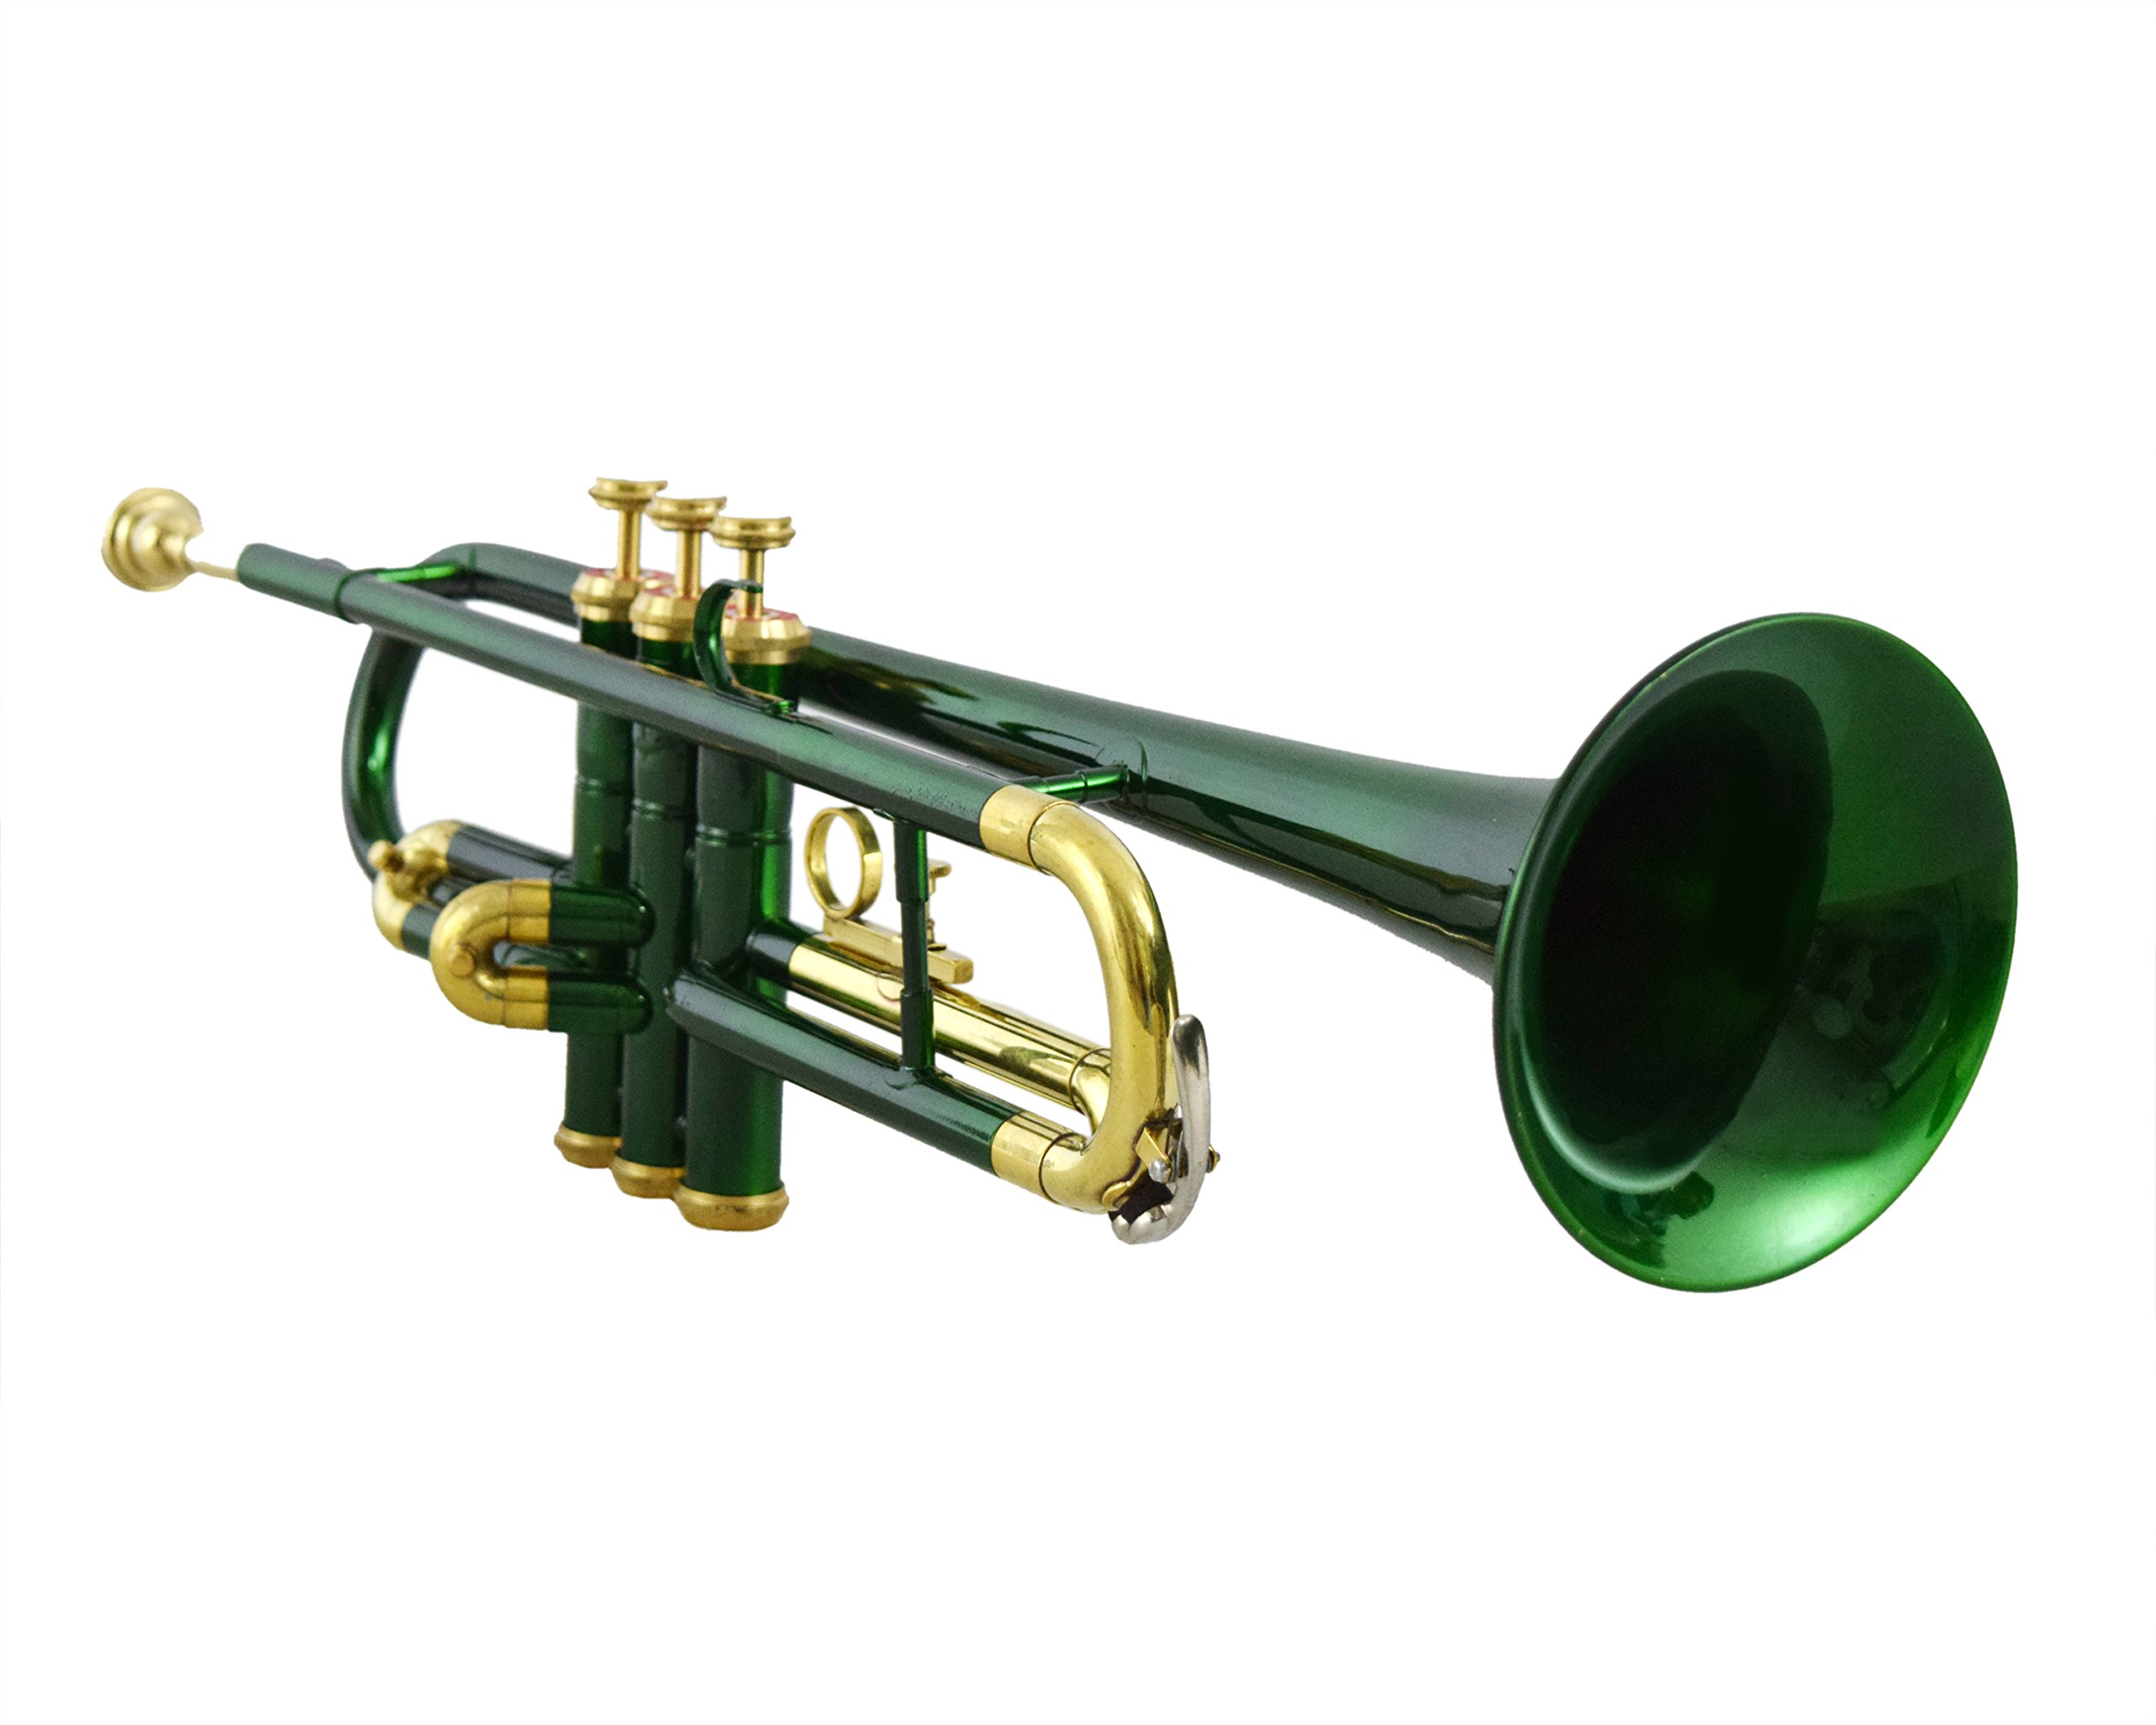 NASIR ALI TRUMPET Bb PITCH DARK GREEN LACQUER FREE HARD CASE & MP